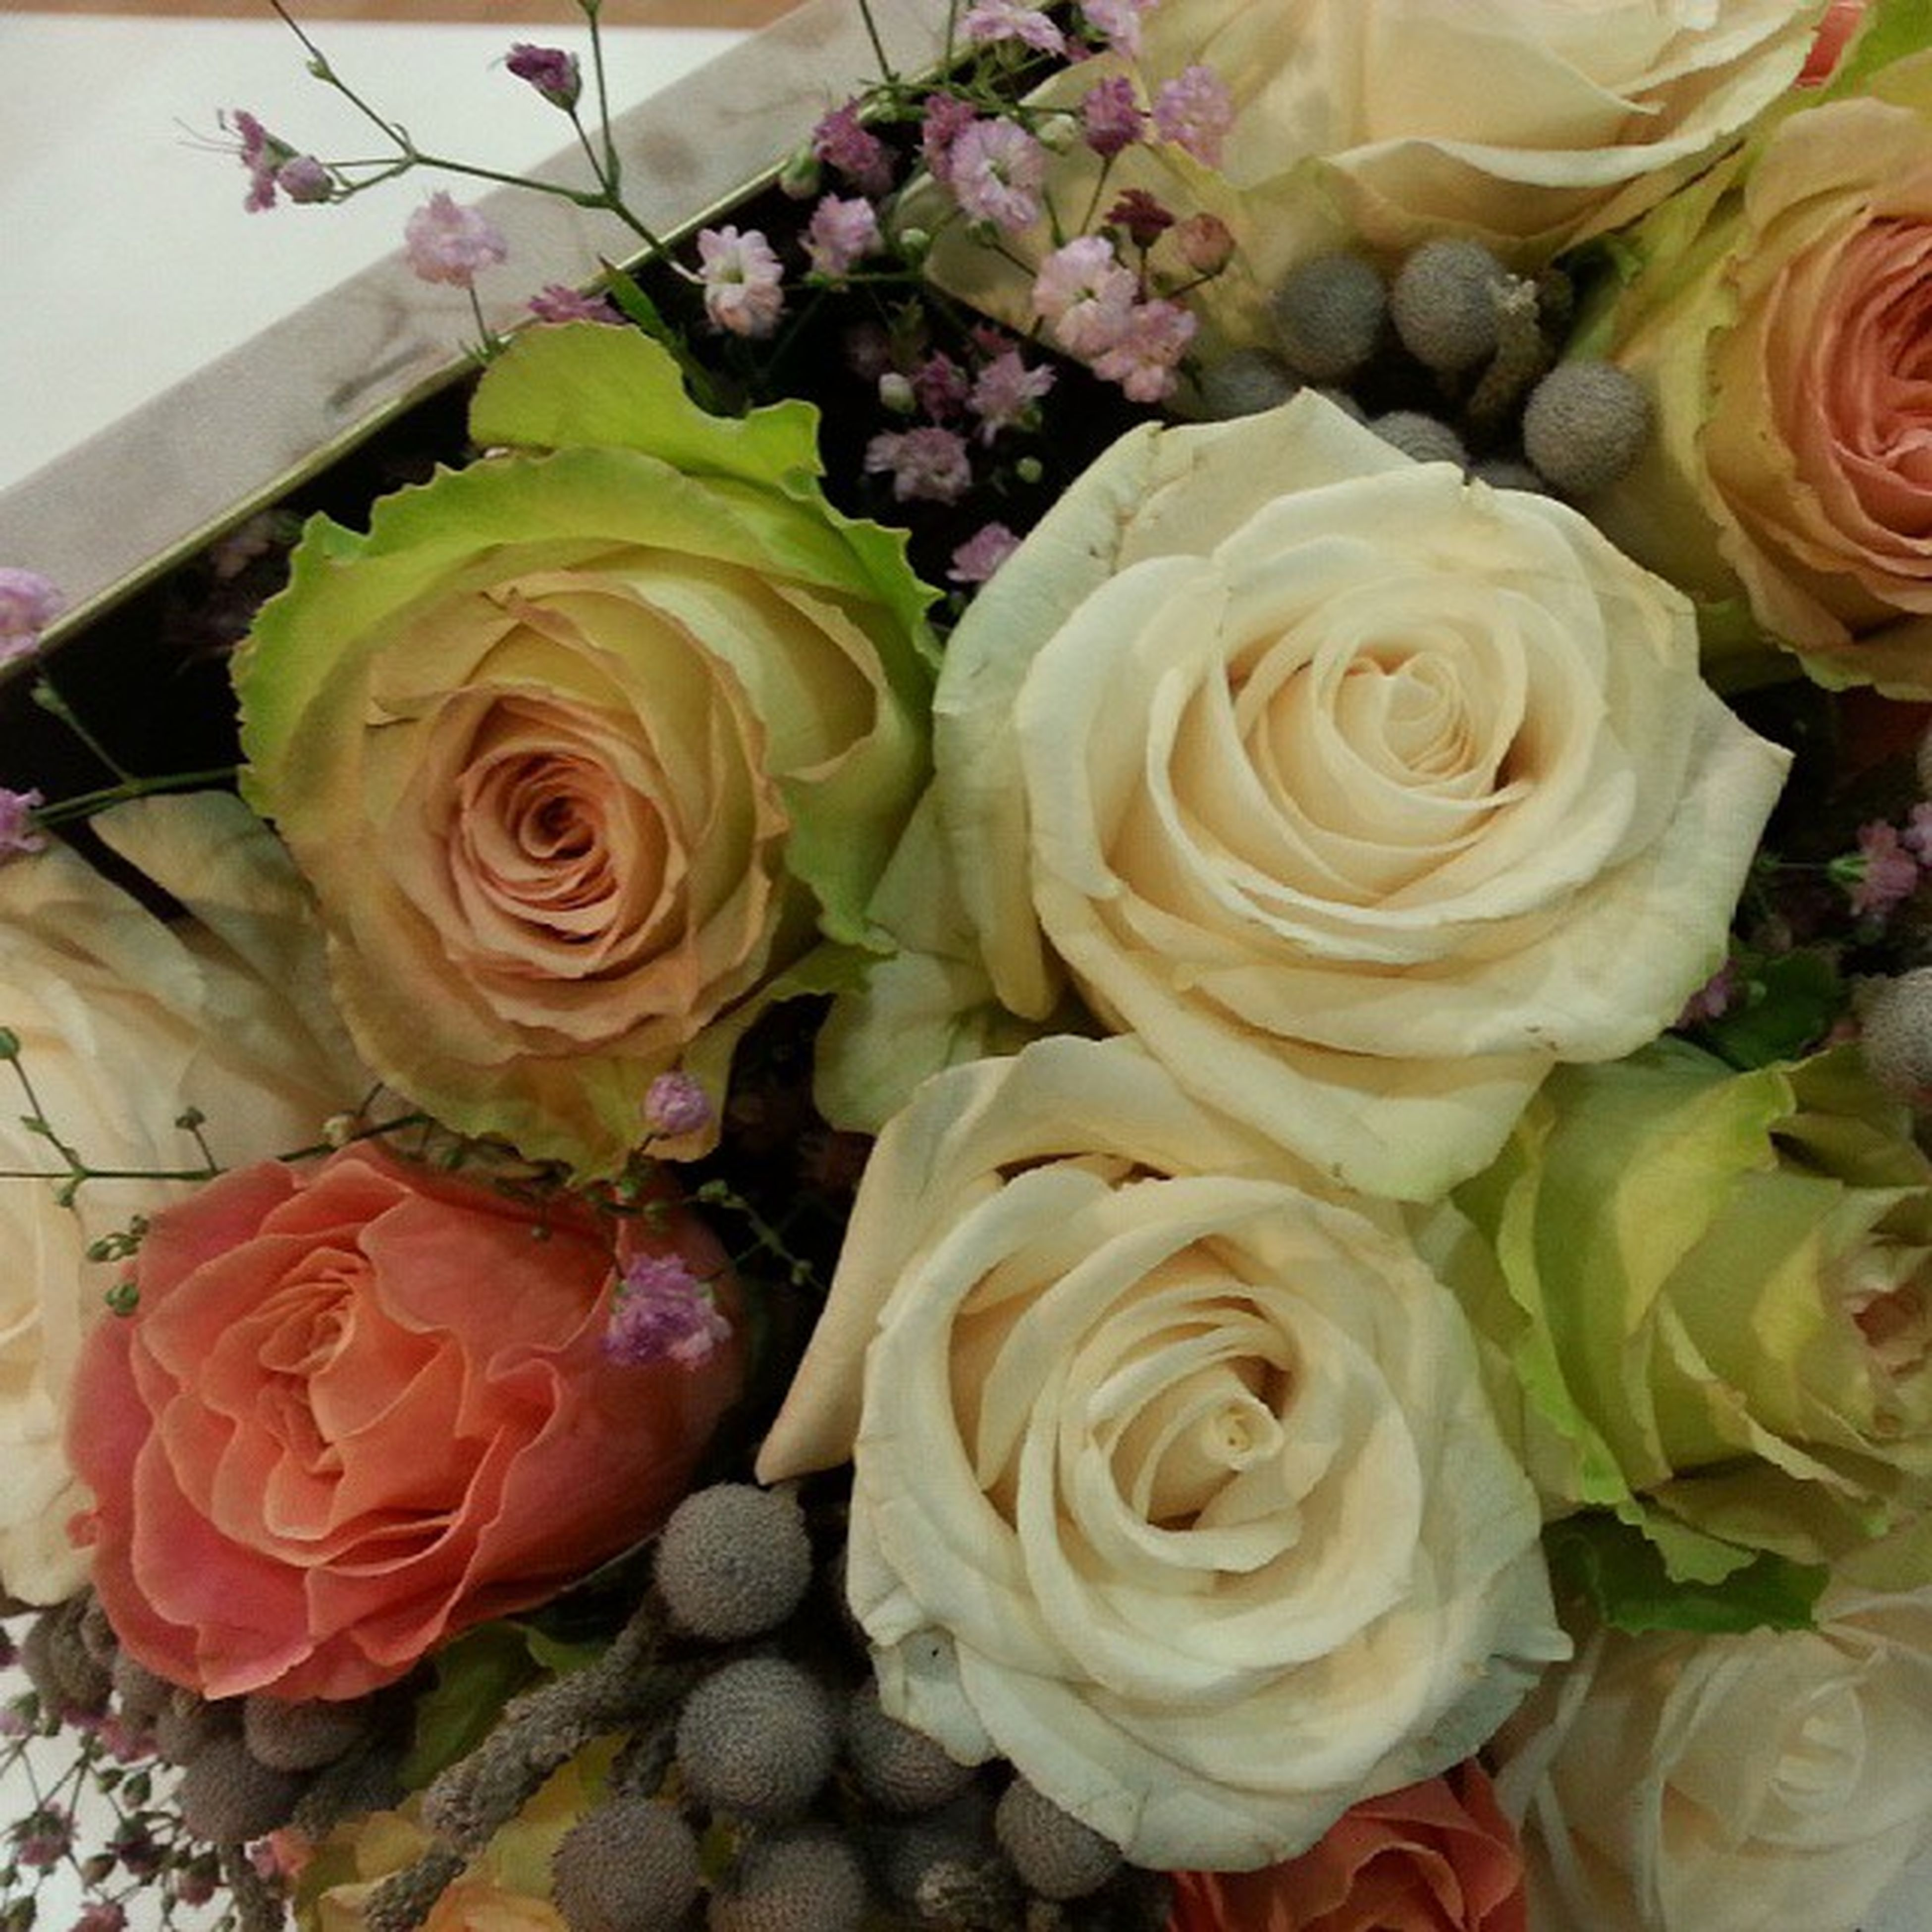 flower, rose - flower, freshness, fragility, petal, rose, flower head, indoors, bouquet, beauty in nature, high angle view, bunch of flowers, close-up, nature, variation, growth, multi colored, no people, plant, pink color